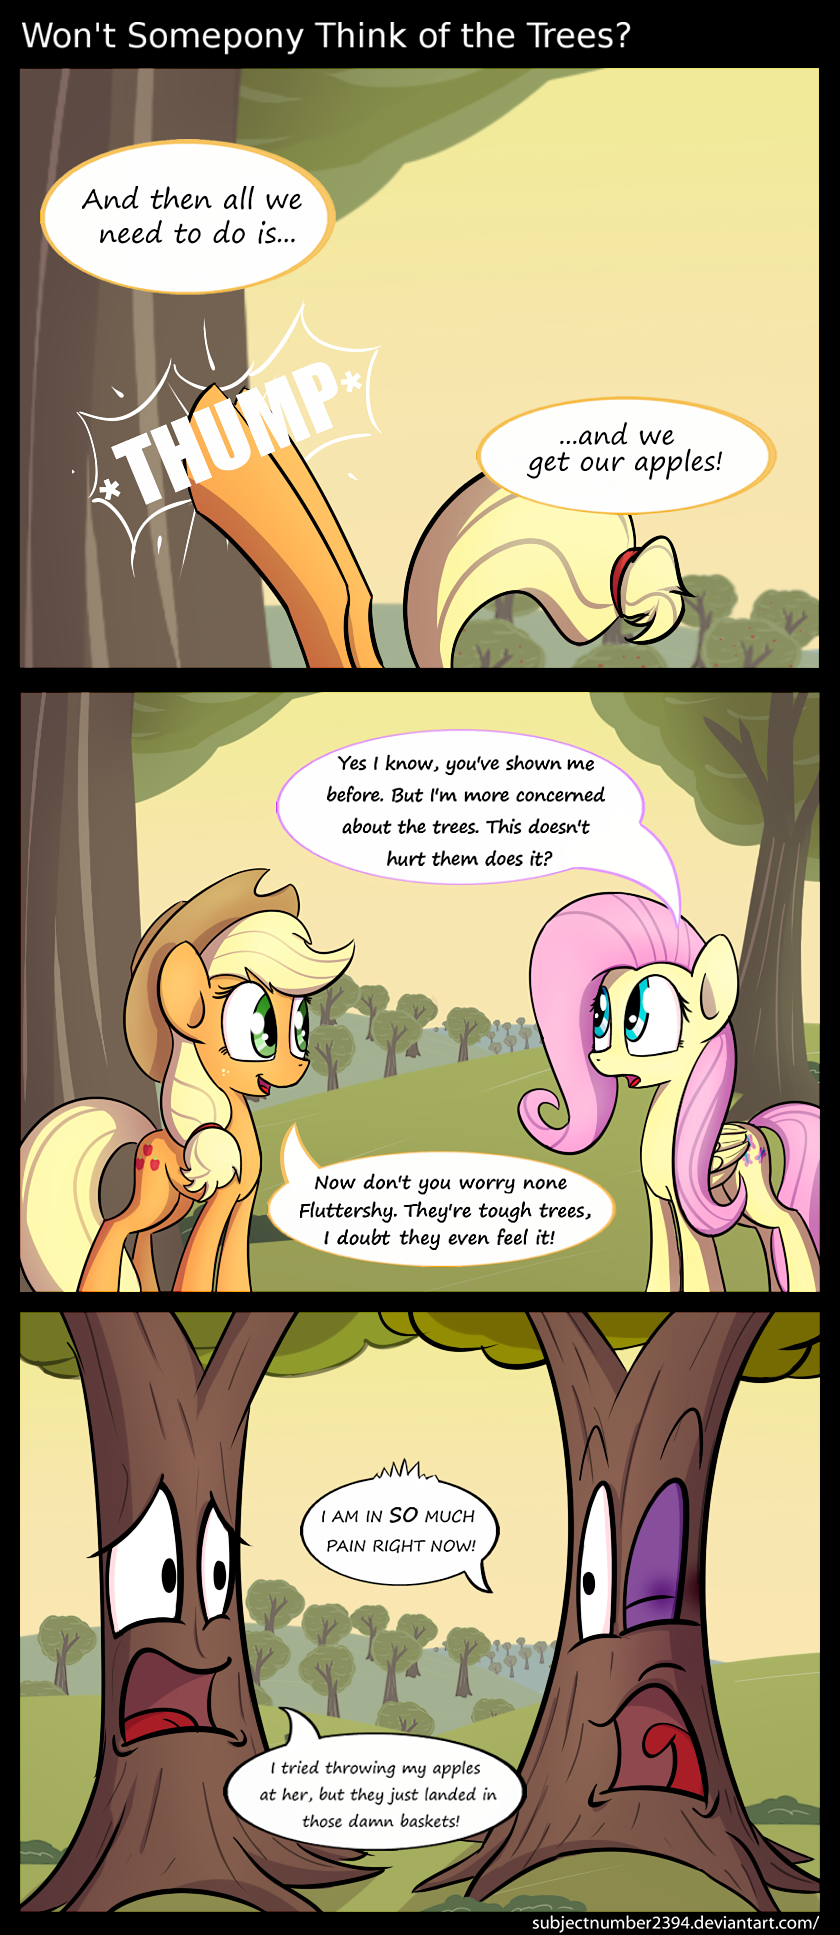 Won't Somepony Think of the Trees by SubjectNumber2394